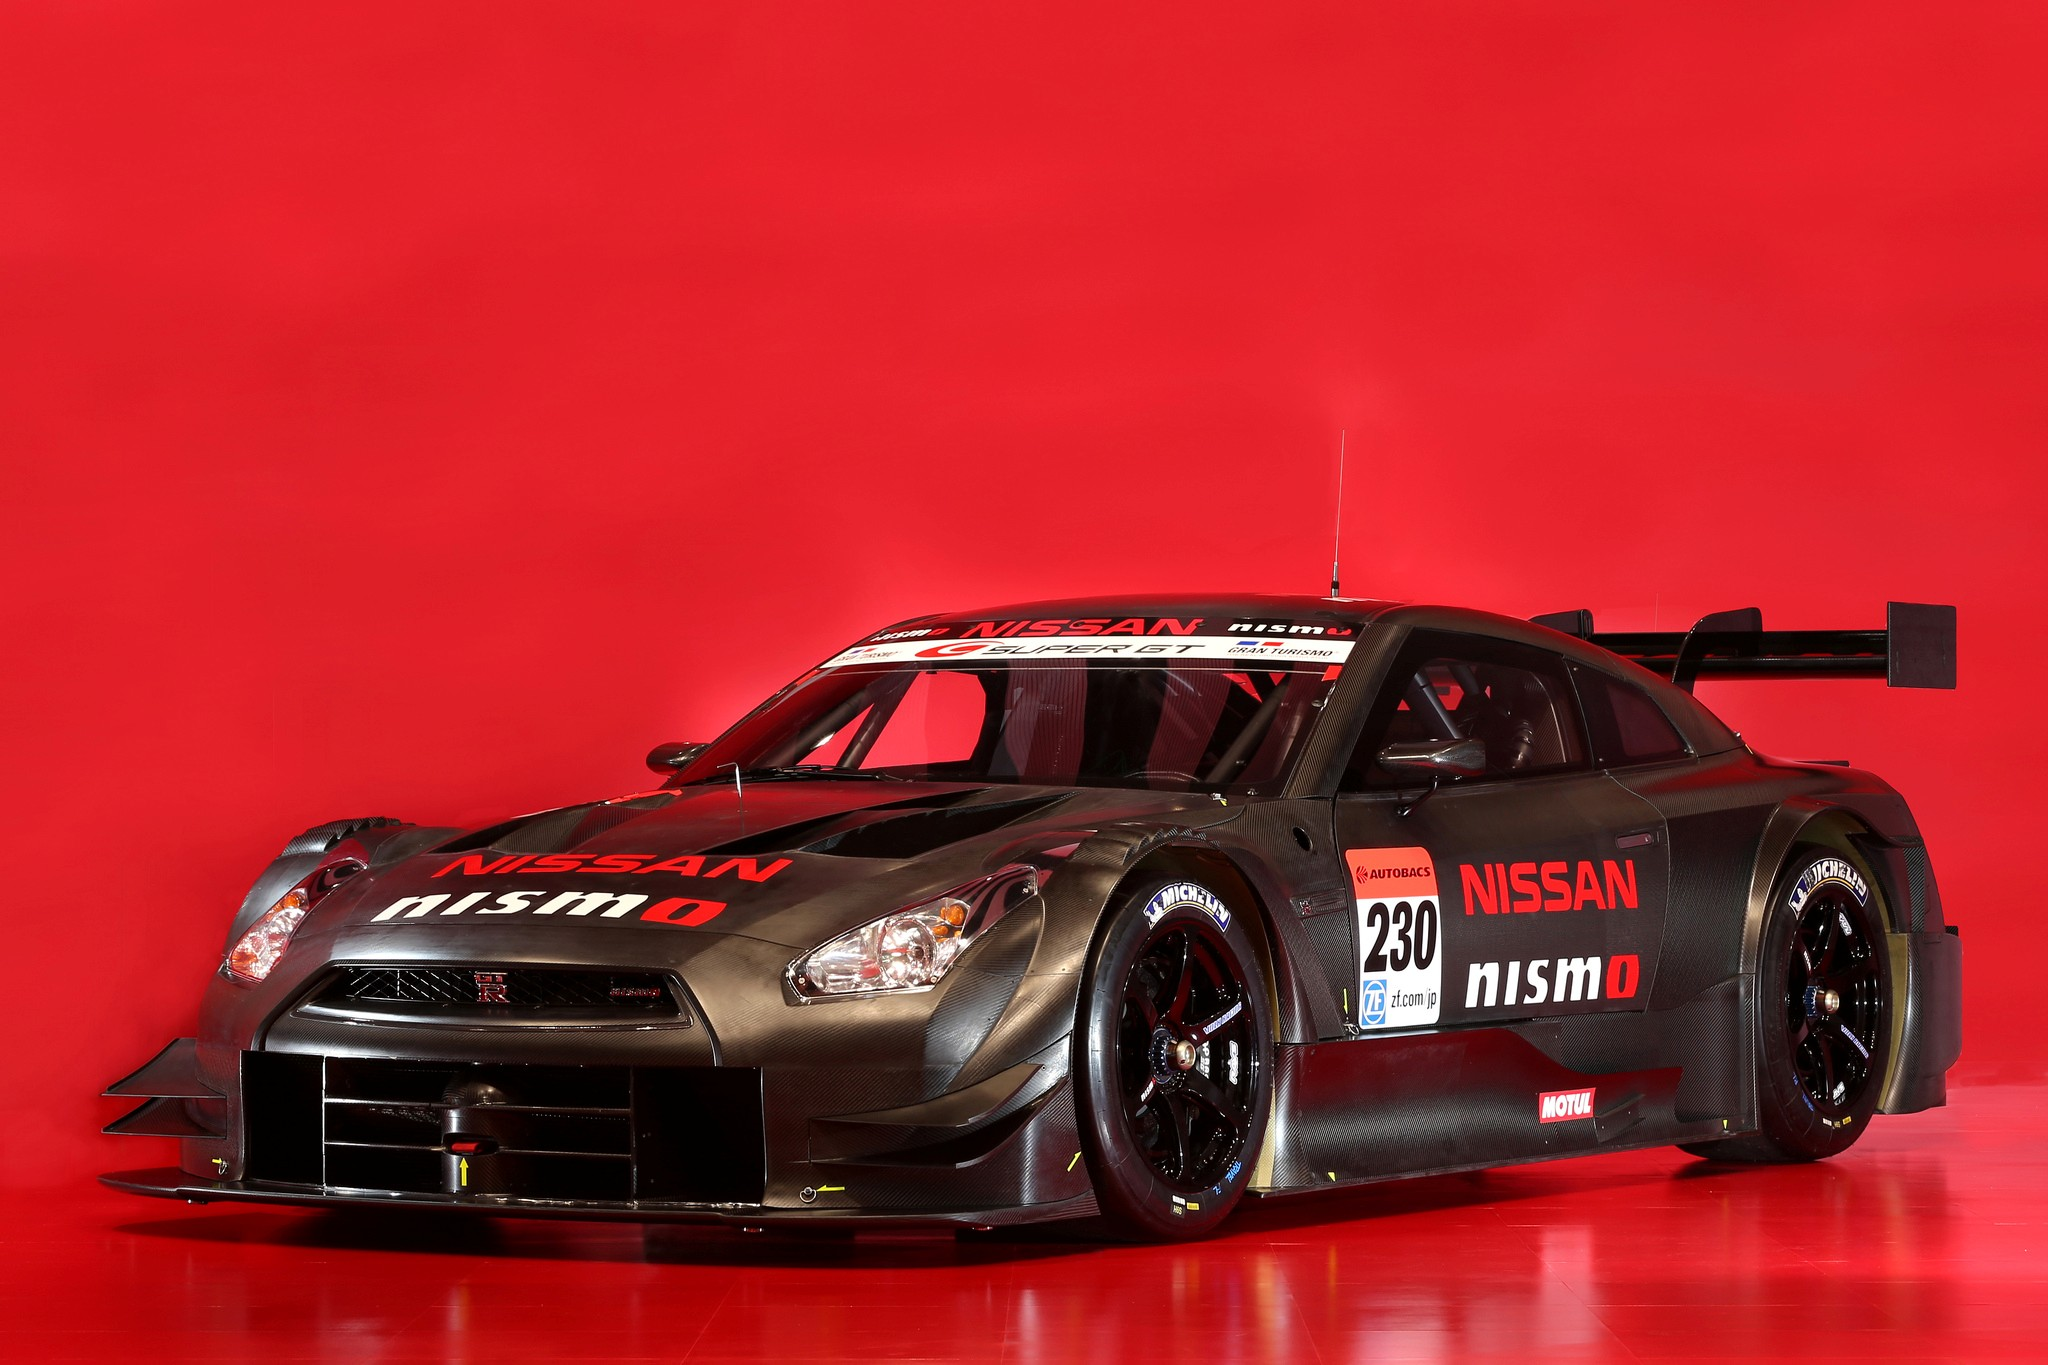 2019 nissan gt r gt500 race car car photos catalog 2018. Black Bedroom Furniture Sets. Home Design Ideas